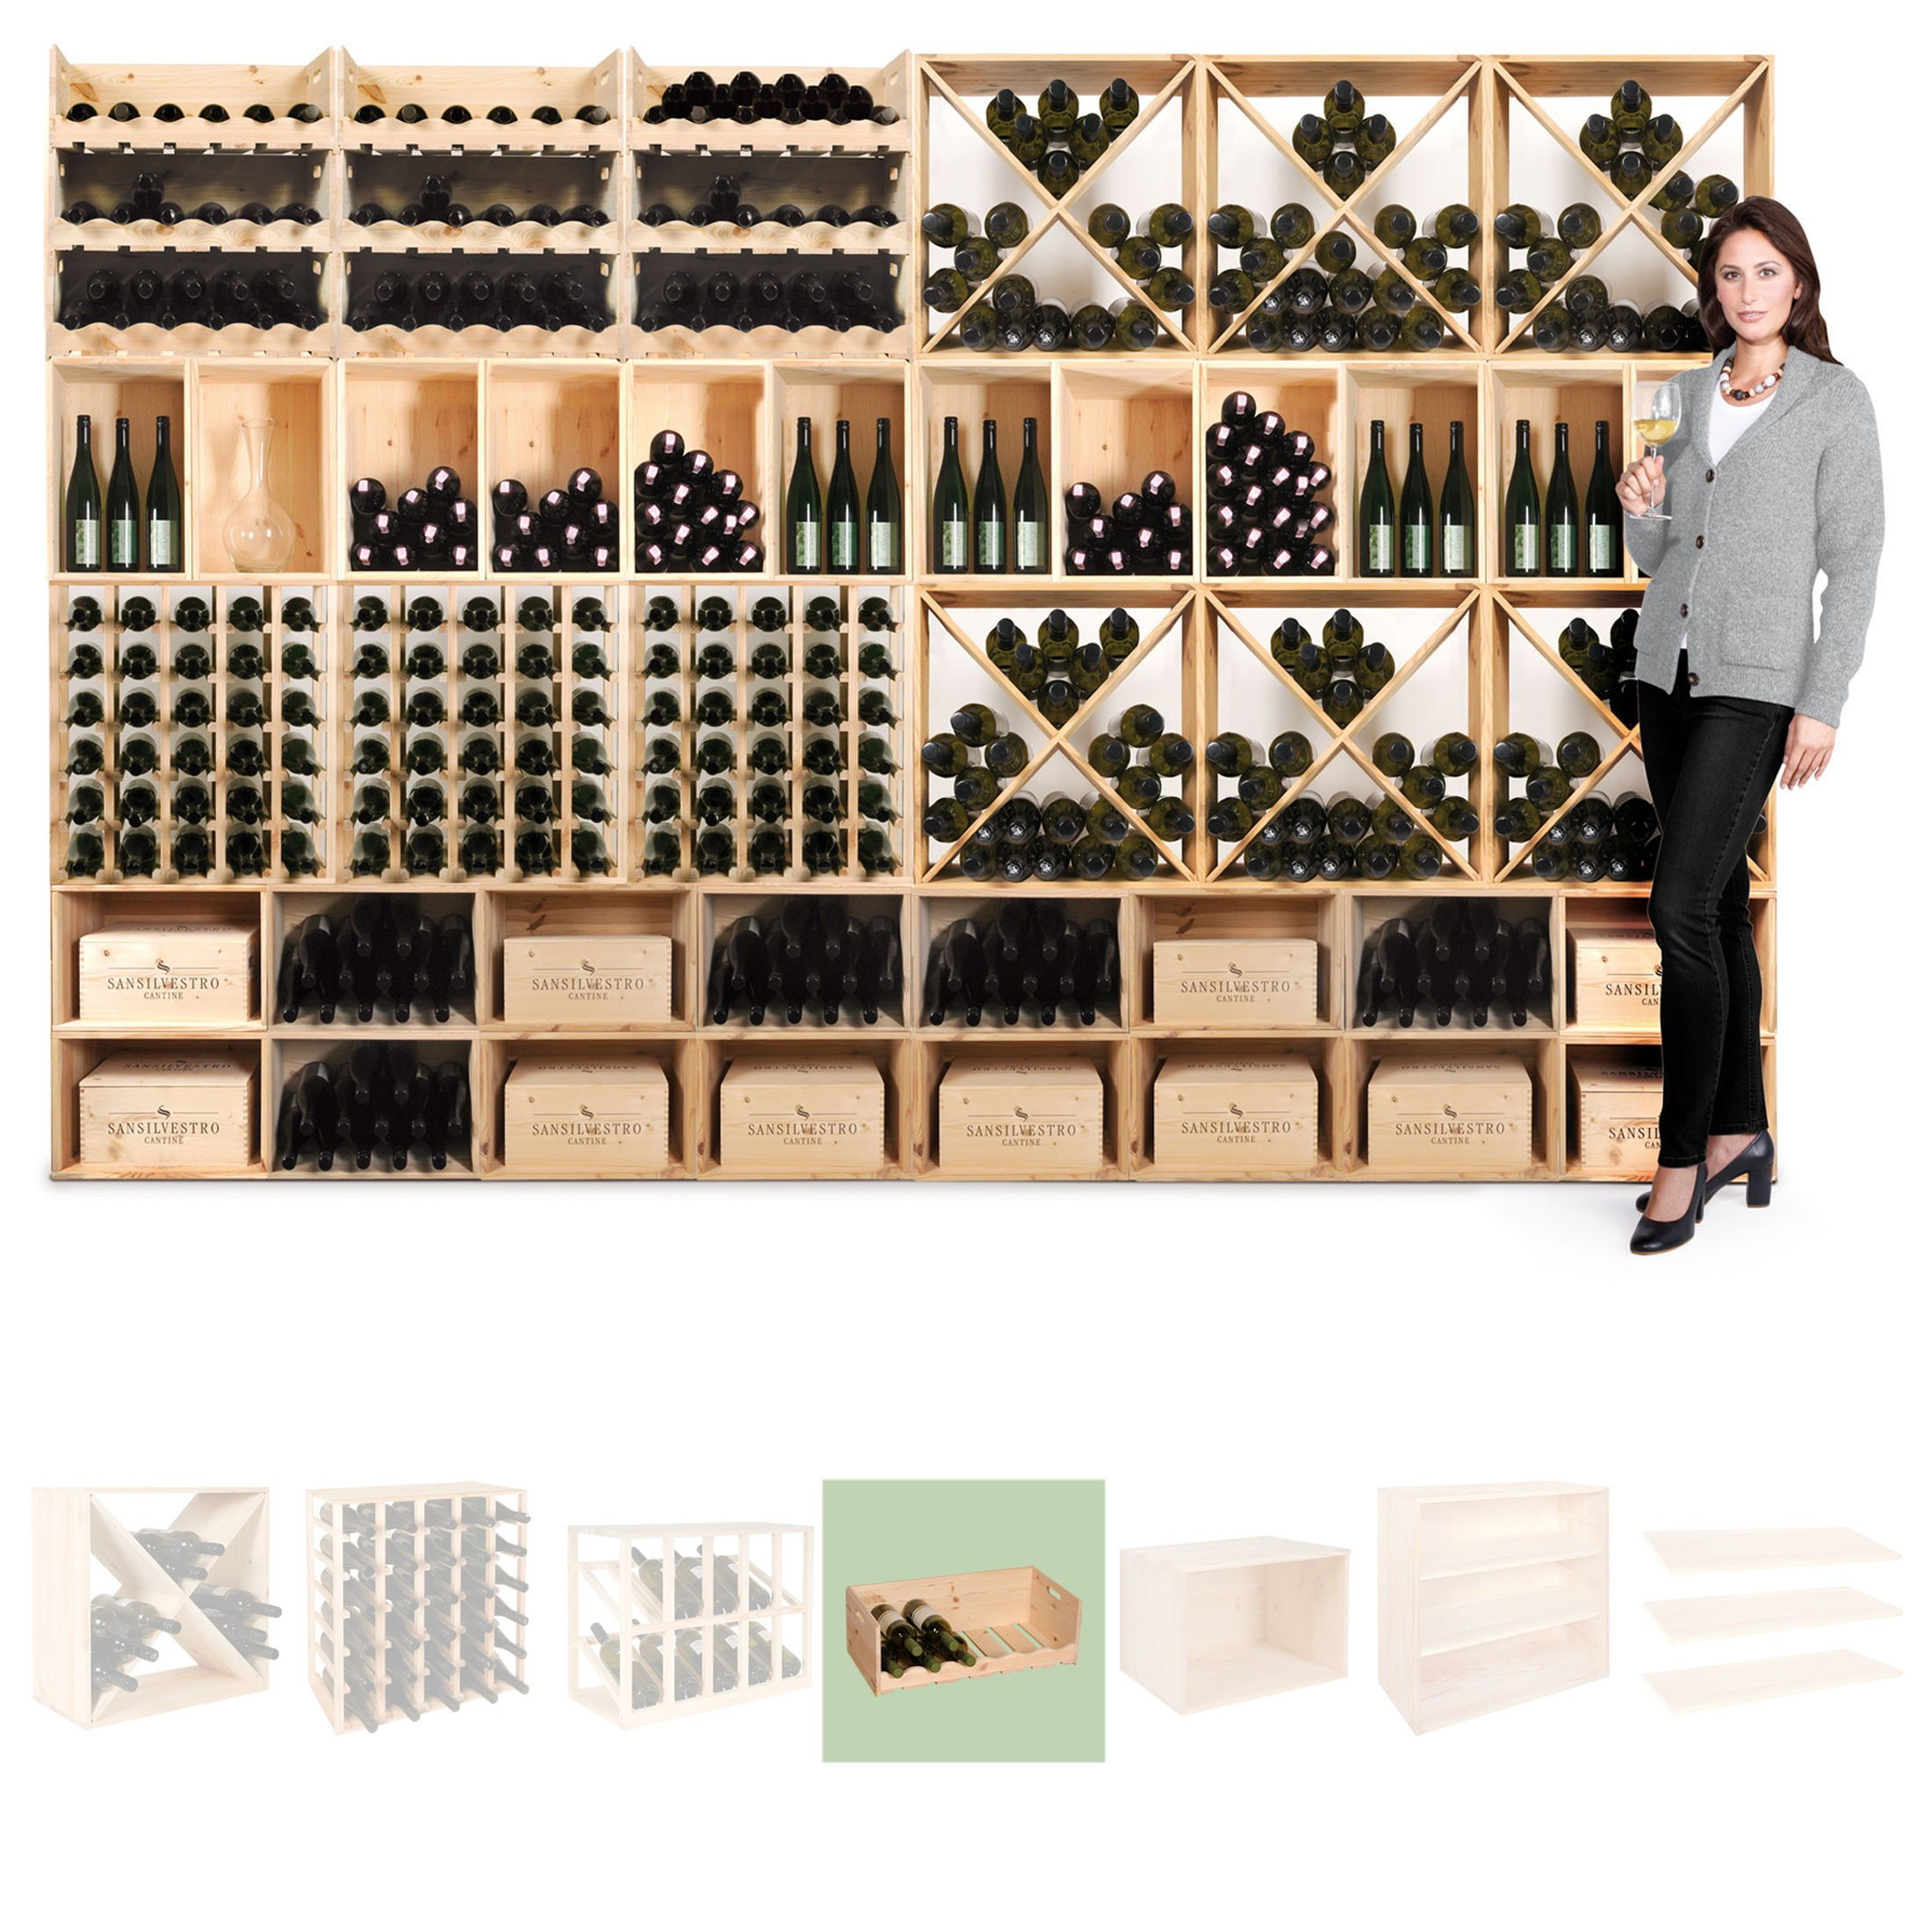 weinregal flaschenregal system vincasa holz kiefer natur stapelbar erweite ebay. Black Bedroom Furniture Sets. Home Design Ideas